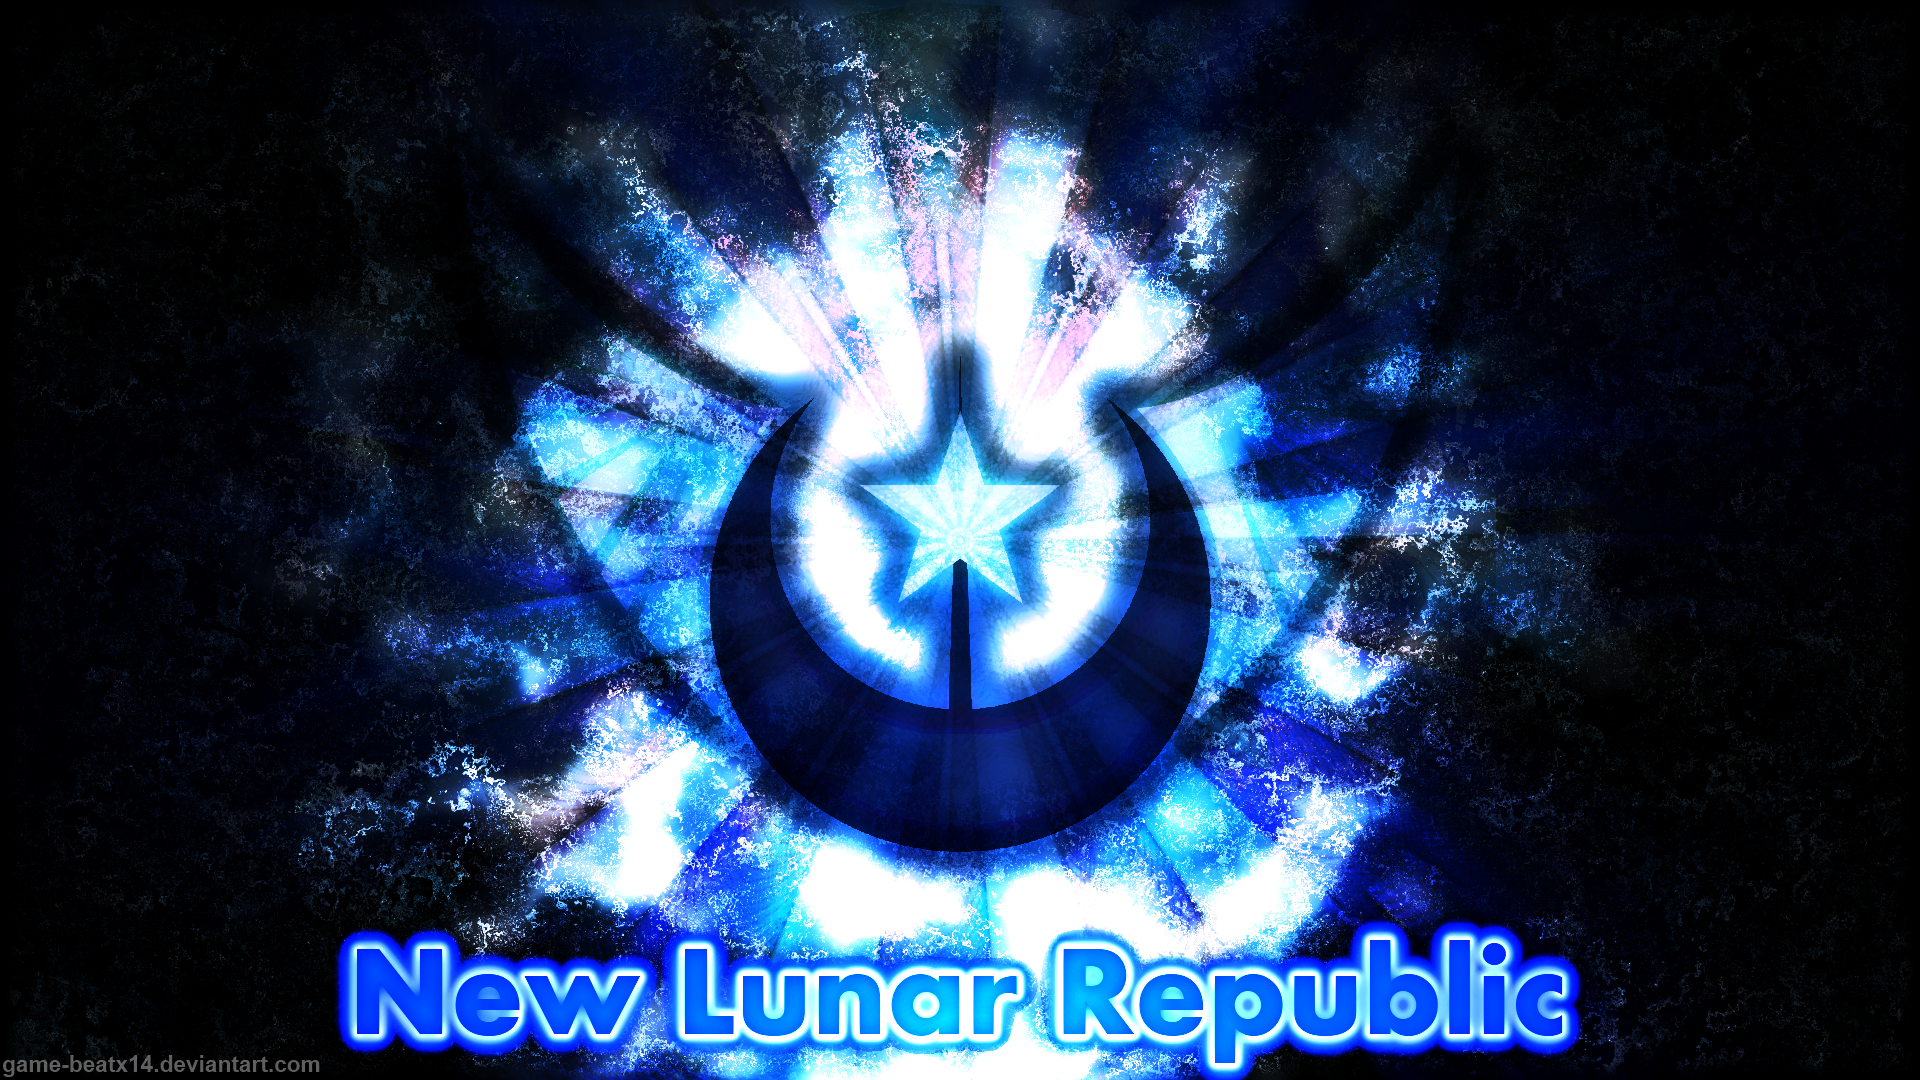 New Lunar Republic Wallpaper 3 by Emkay-MLP and Game-BeatX14